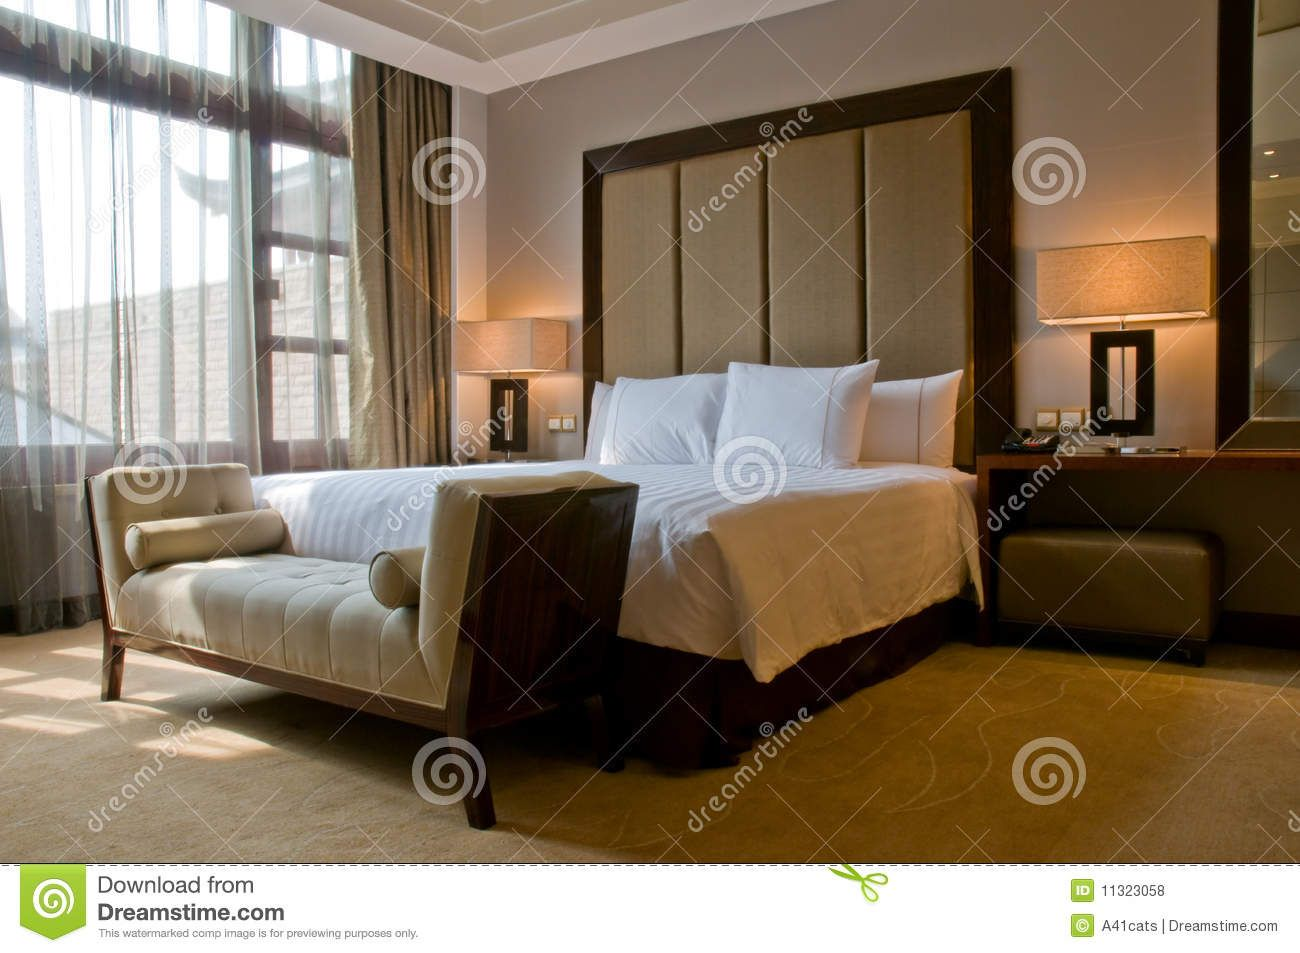 King Size Bed In A Five Star Hotel Suite Room Suite Room Hotel